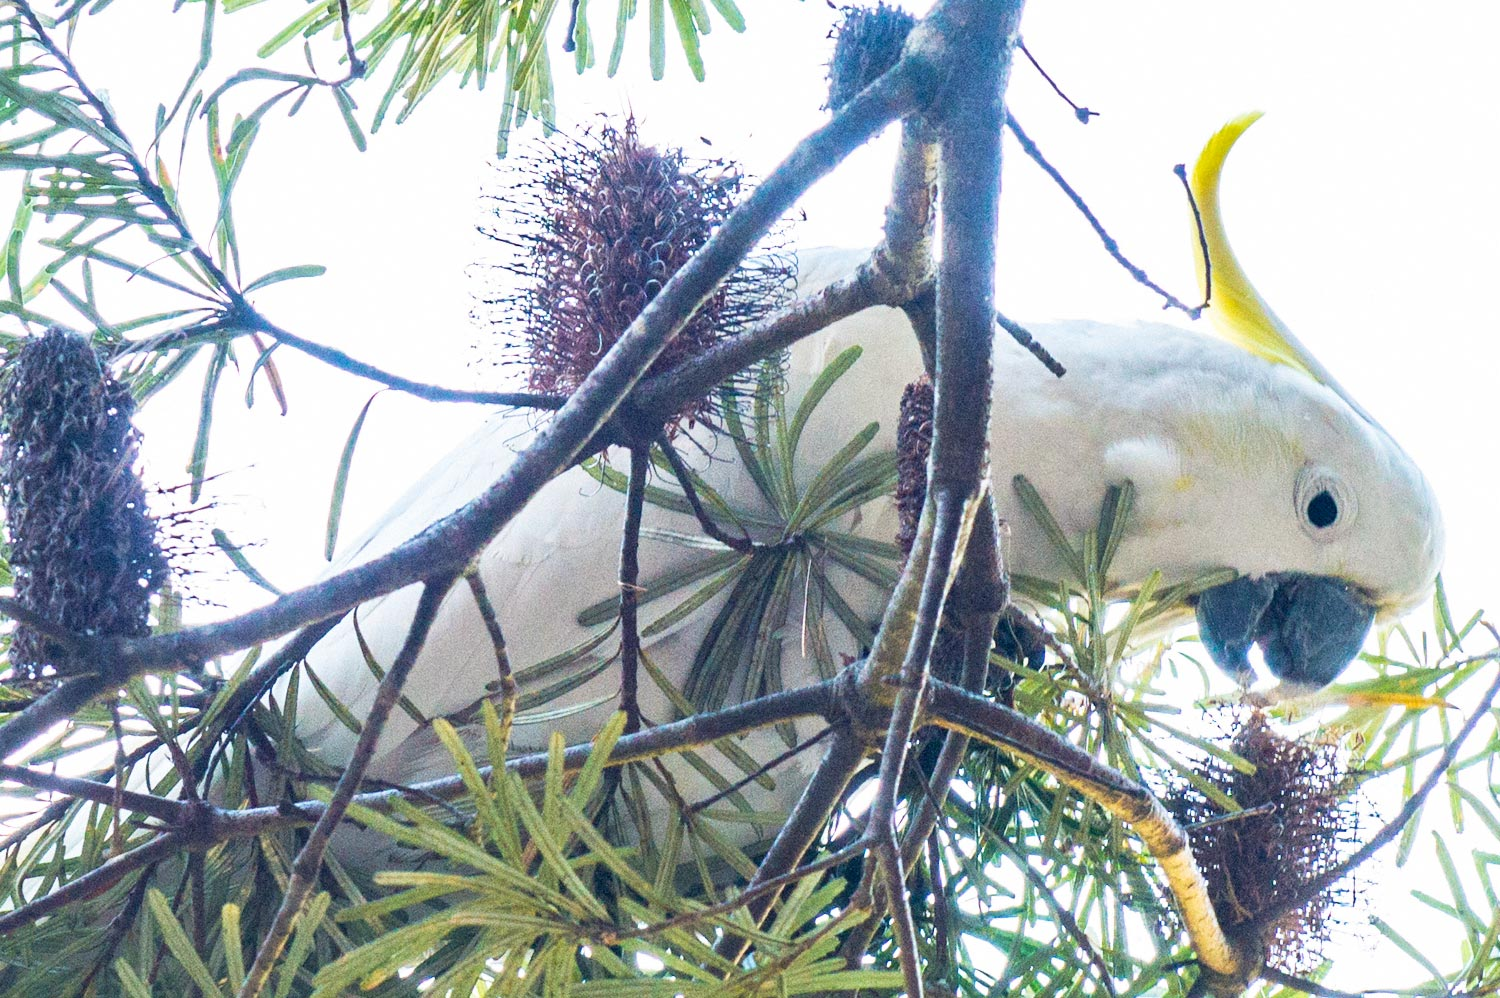 Warren-Hinder-Cockatoo-Feeding.jpg